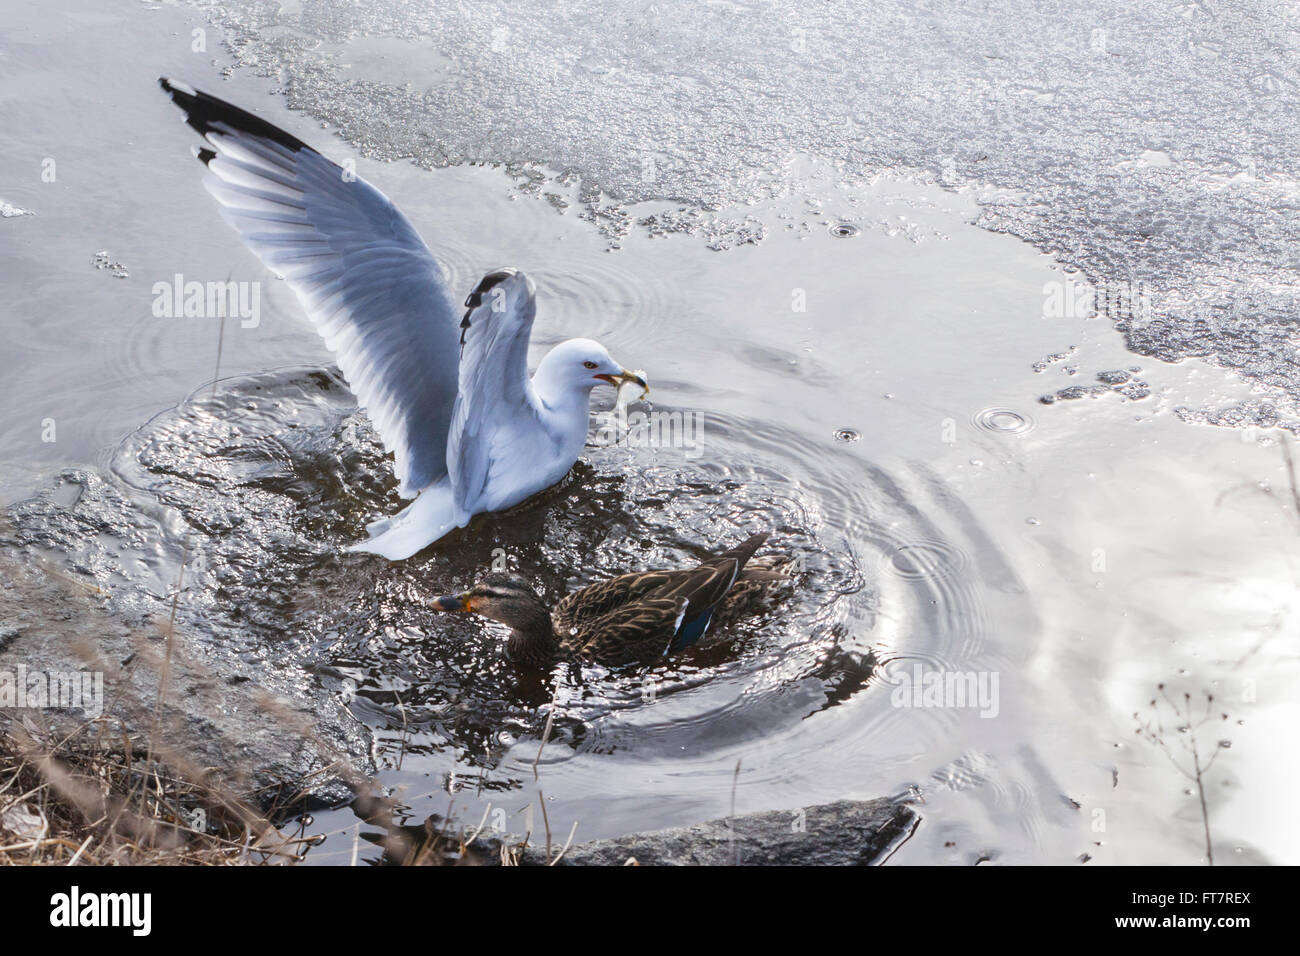 Seagulls frolicking in the melting snow and ice. - Stock Image